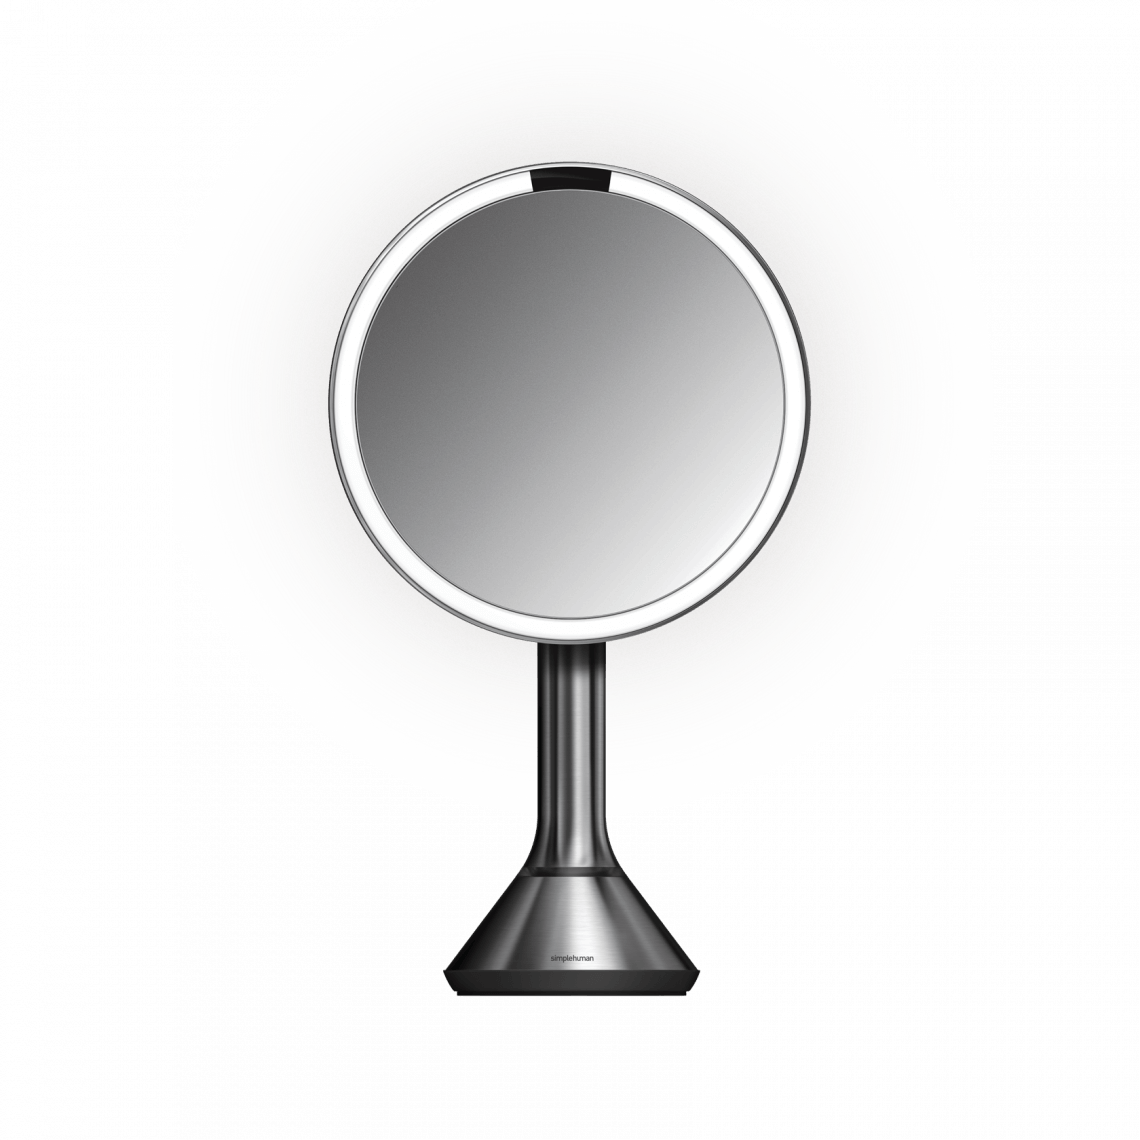 Sensor Mirror With Touch Control Brightness 8 Round 5x Magnification Stainless Steel Makeup Vanity Mirror Mirror With Lights Mirror